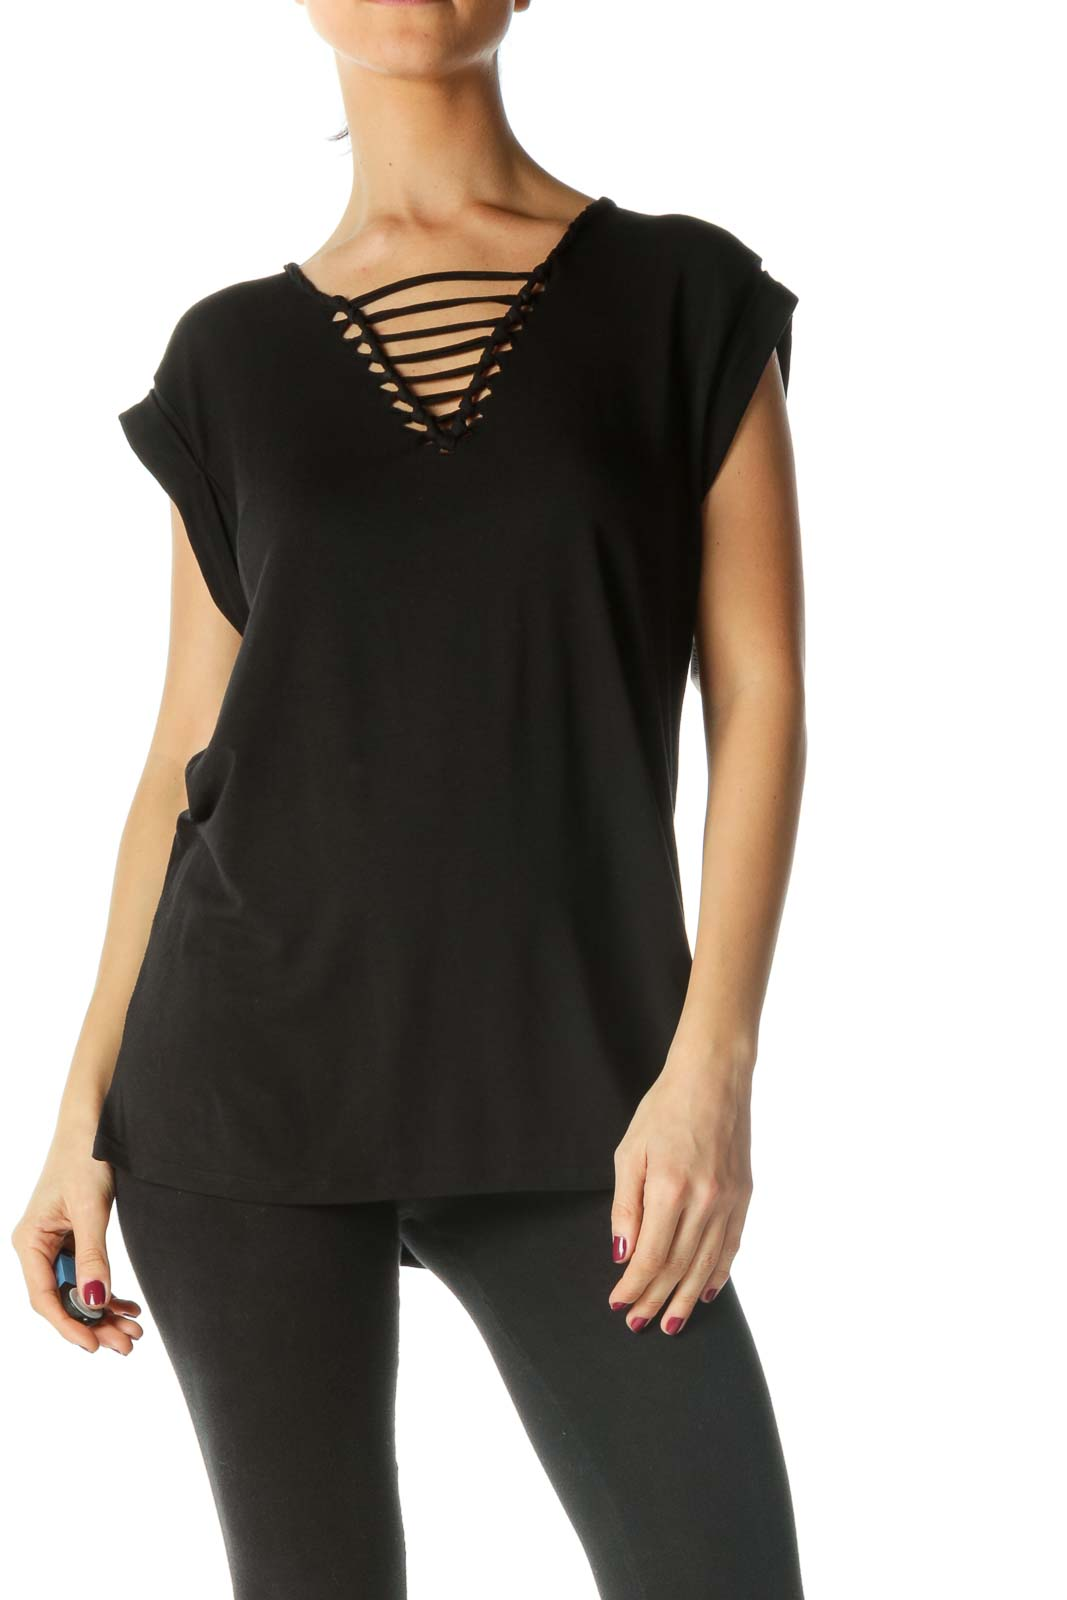 Black V-Neck Design Shirt Front